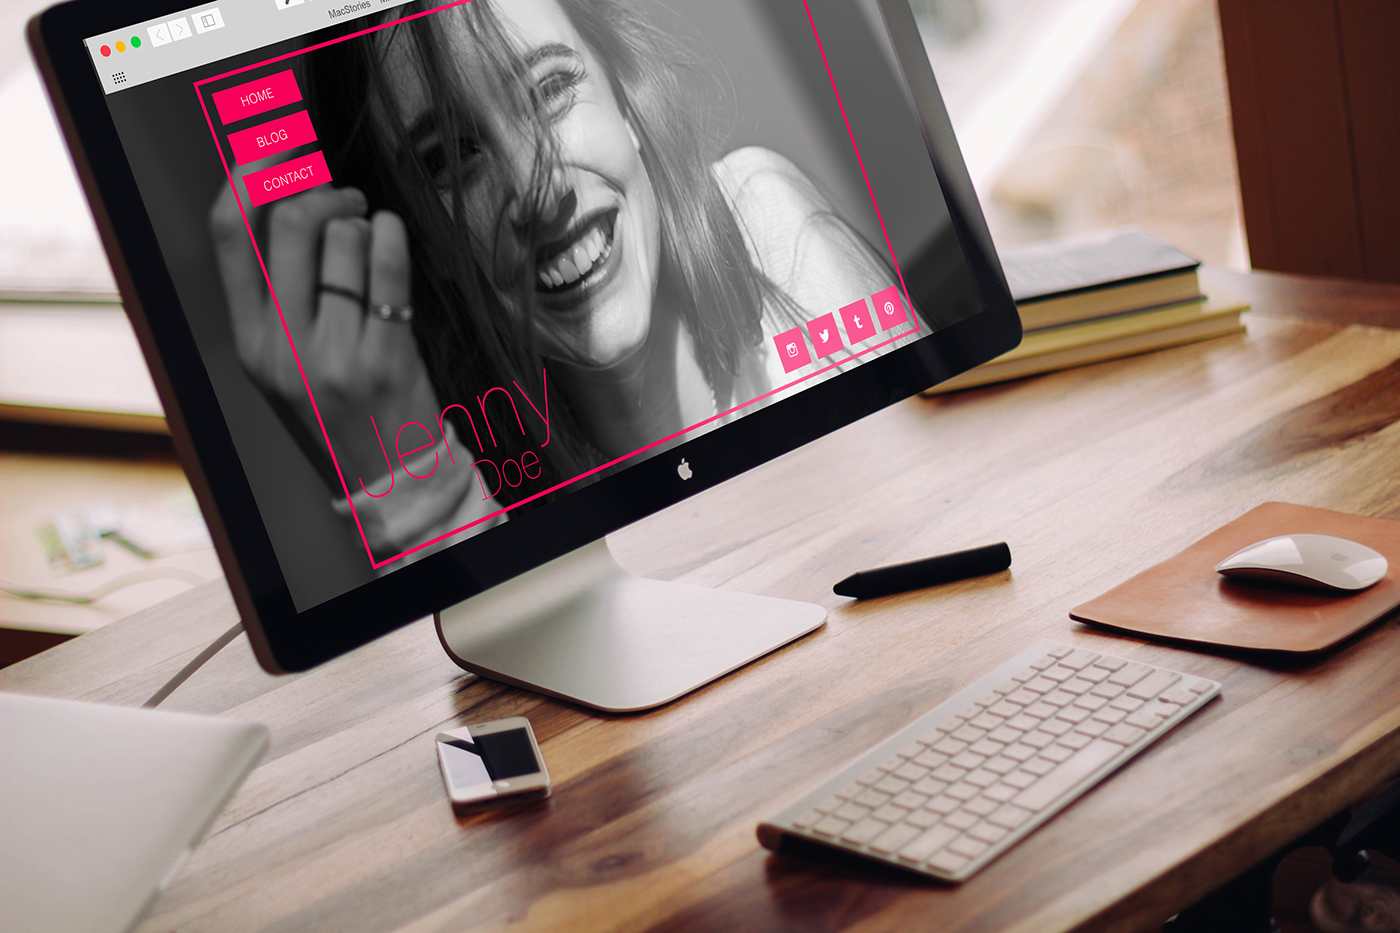 personal personal website One Page Author girl pink red Make Up beauty